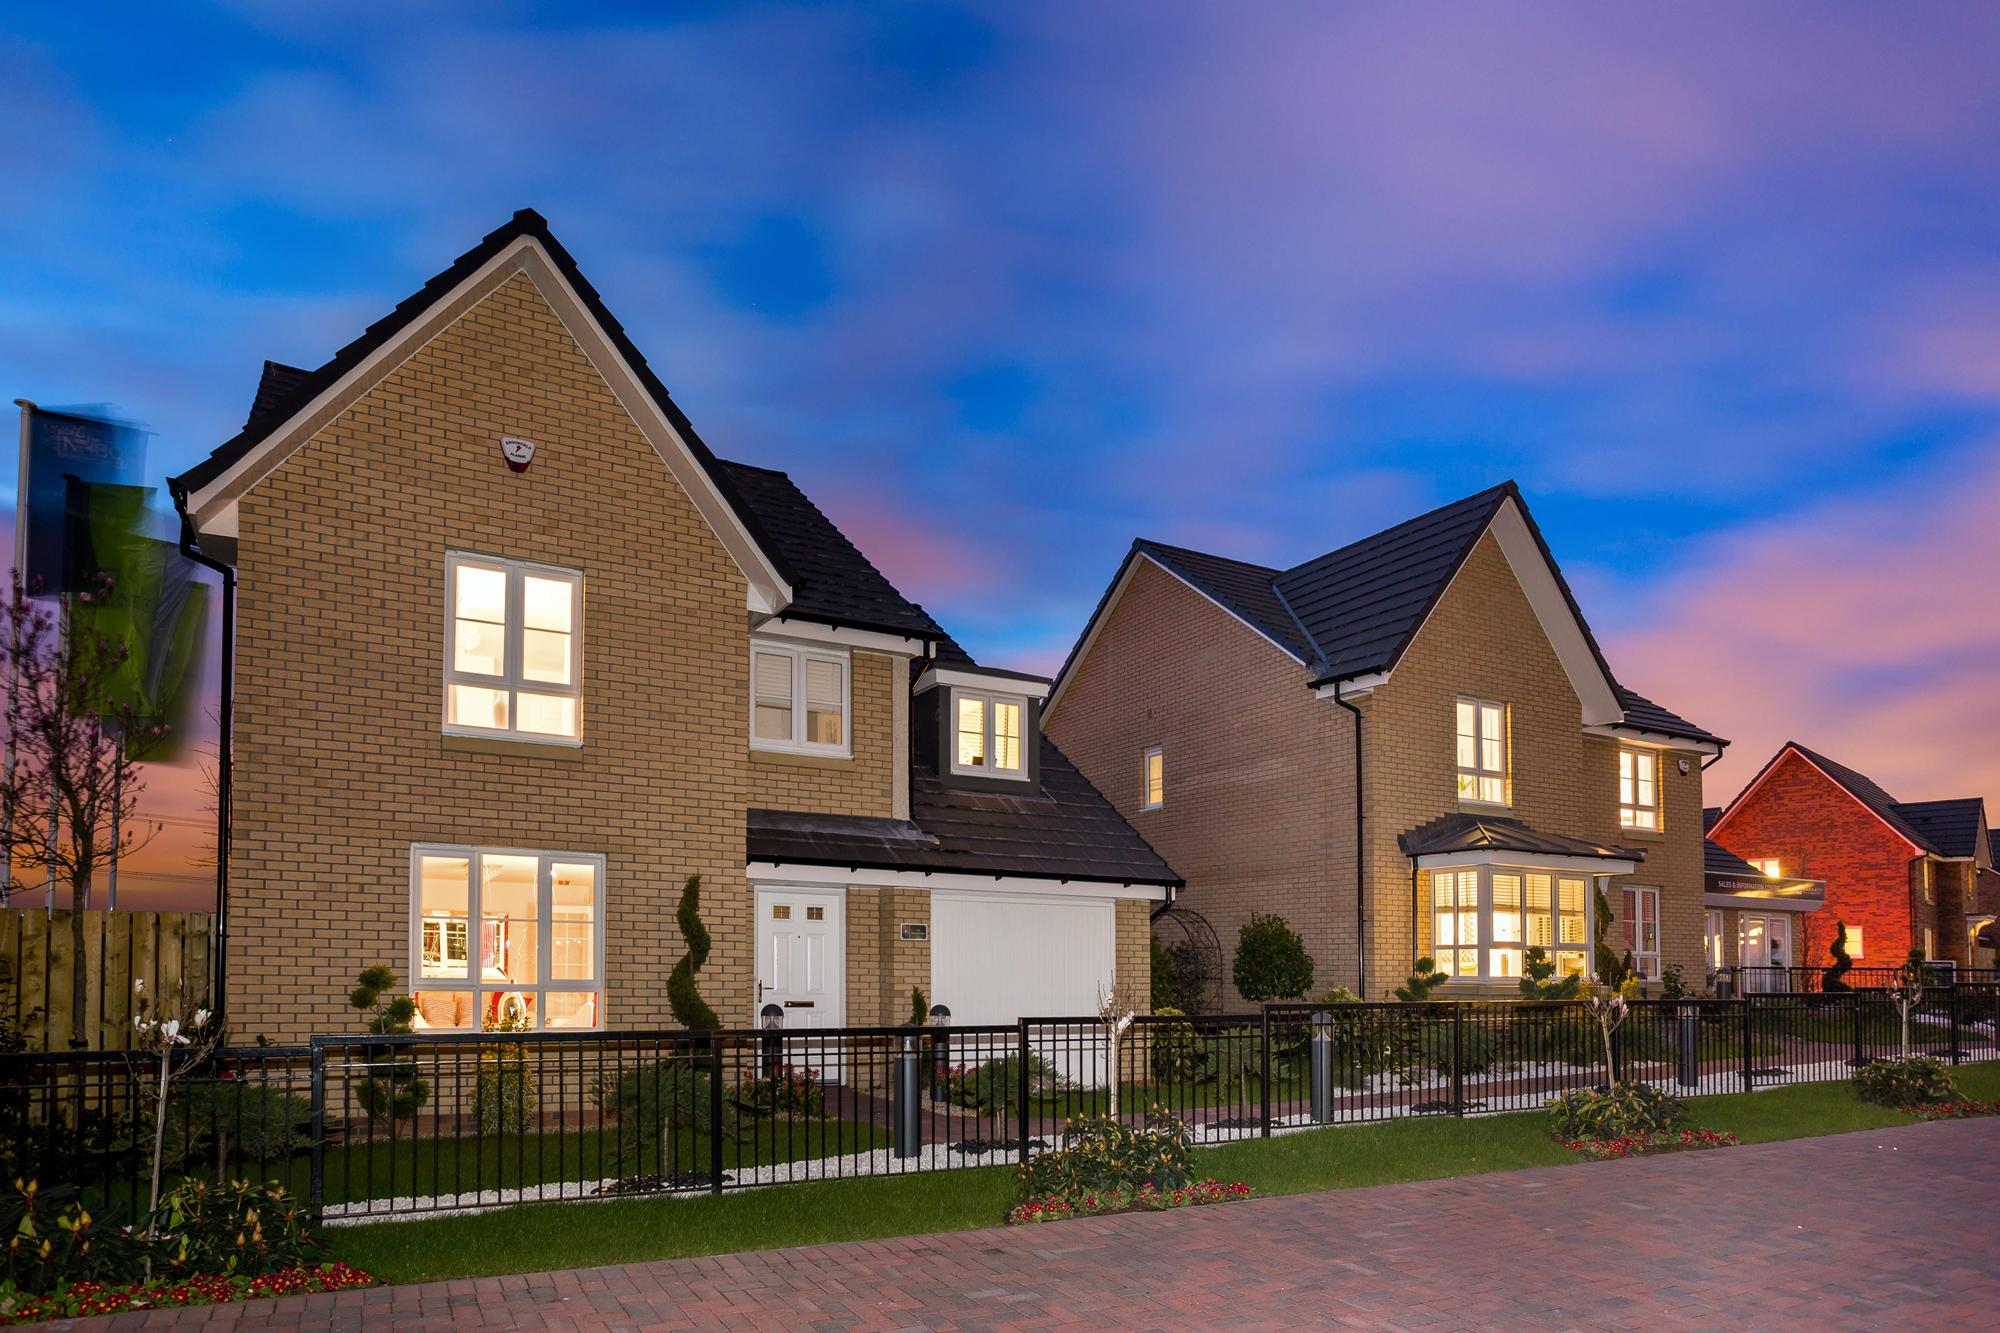 New Build Homes in Cambuslang